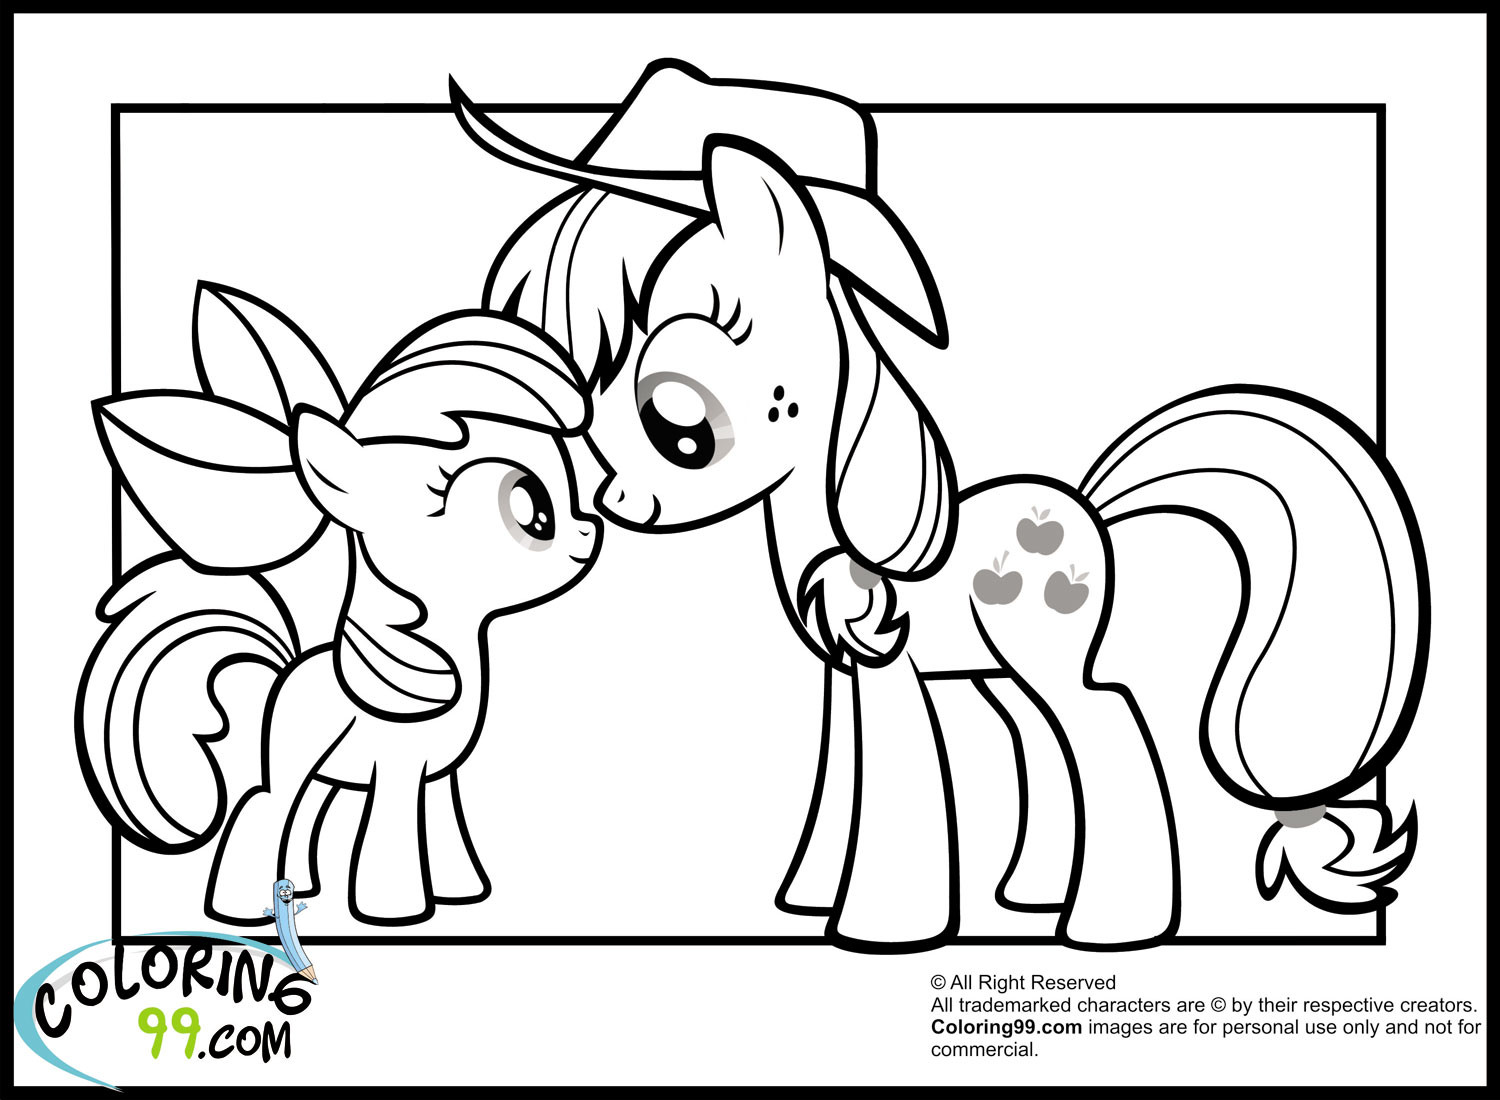 Coloring Sheets For Girls My Little Pony Apple Jack  My Little Pony Applejack Coloring Pages